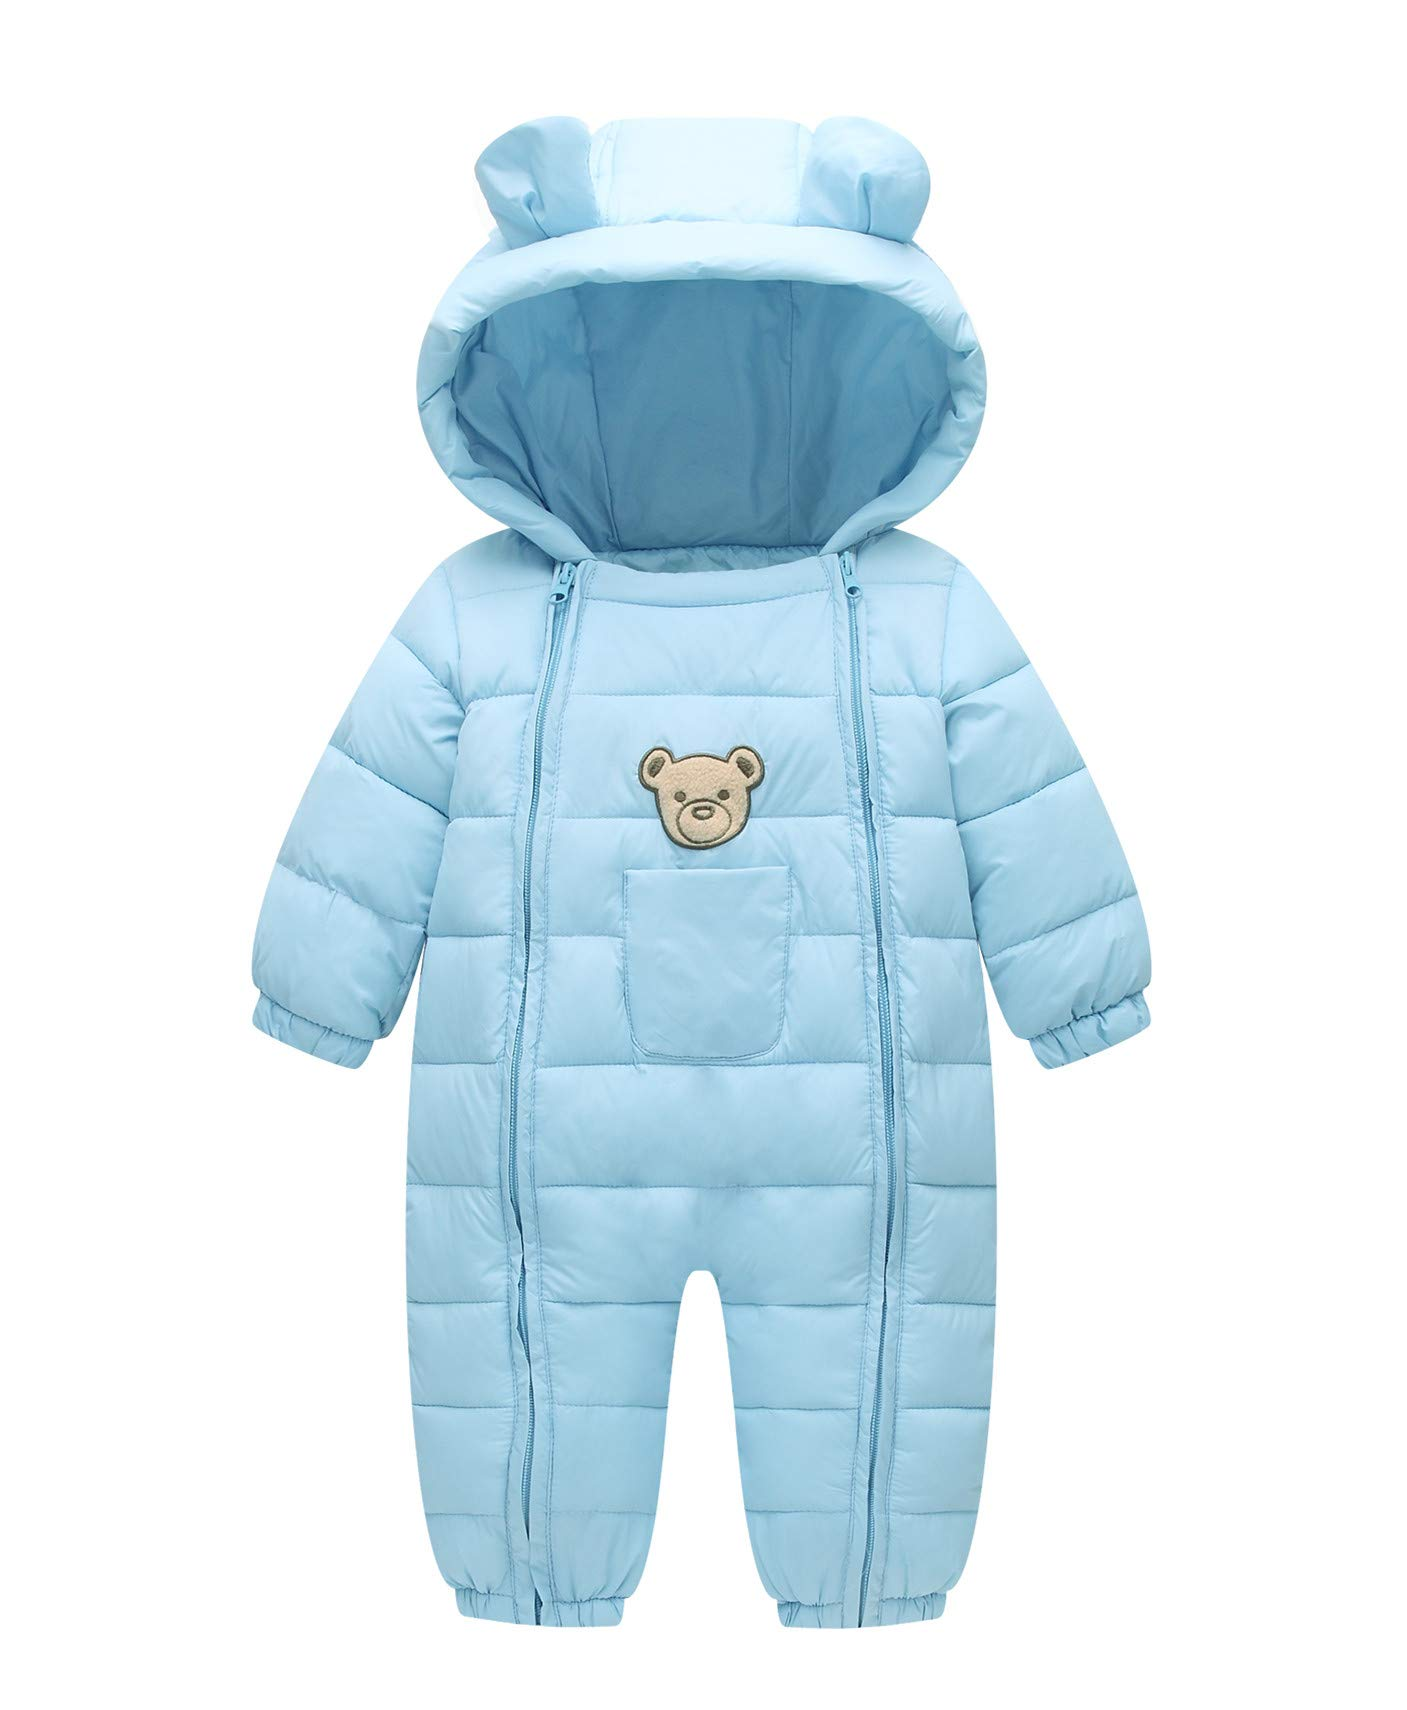 Xuvozta Infant Baby Girl Snowsuit Thermal Winter Romper Outwear Toddler Cute Bear Cotton Coat Blue 80 by Xuvozta